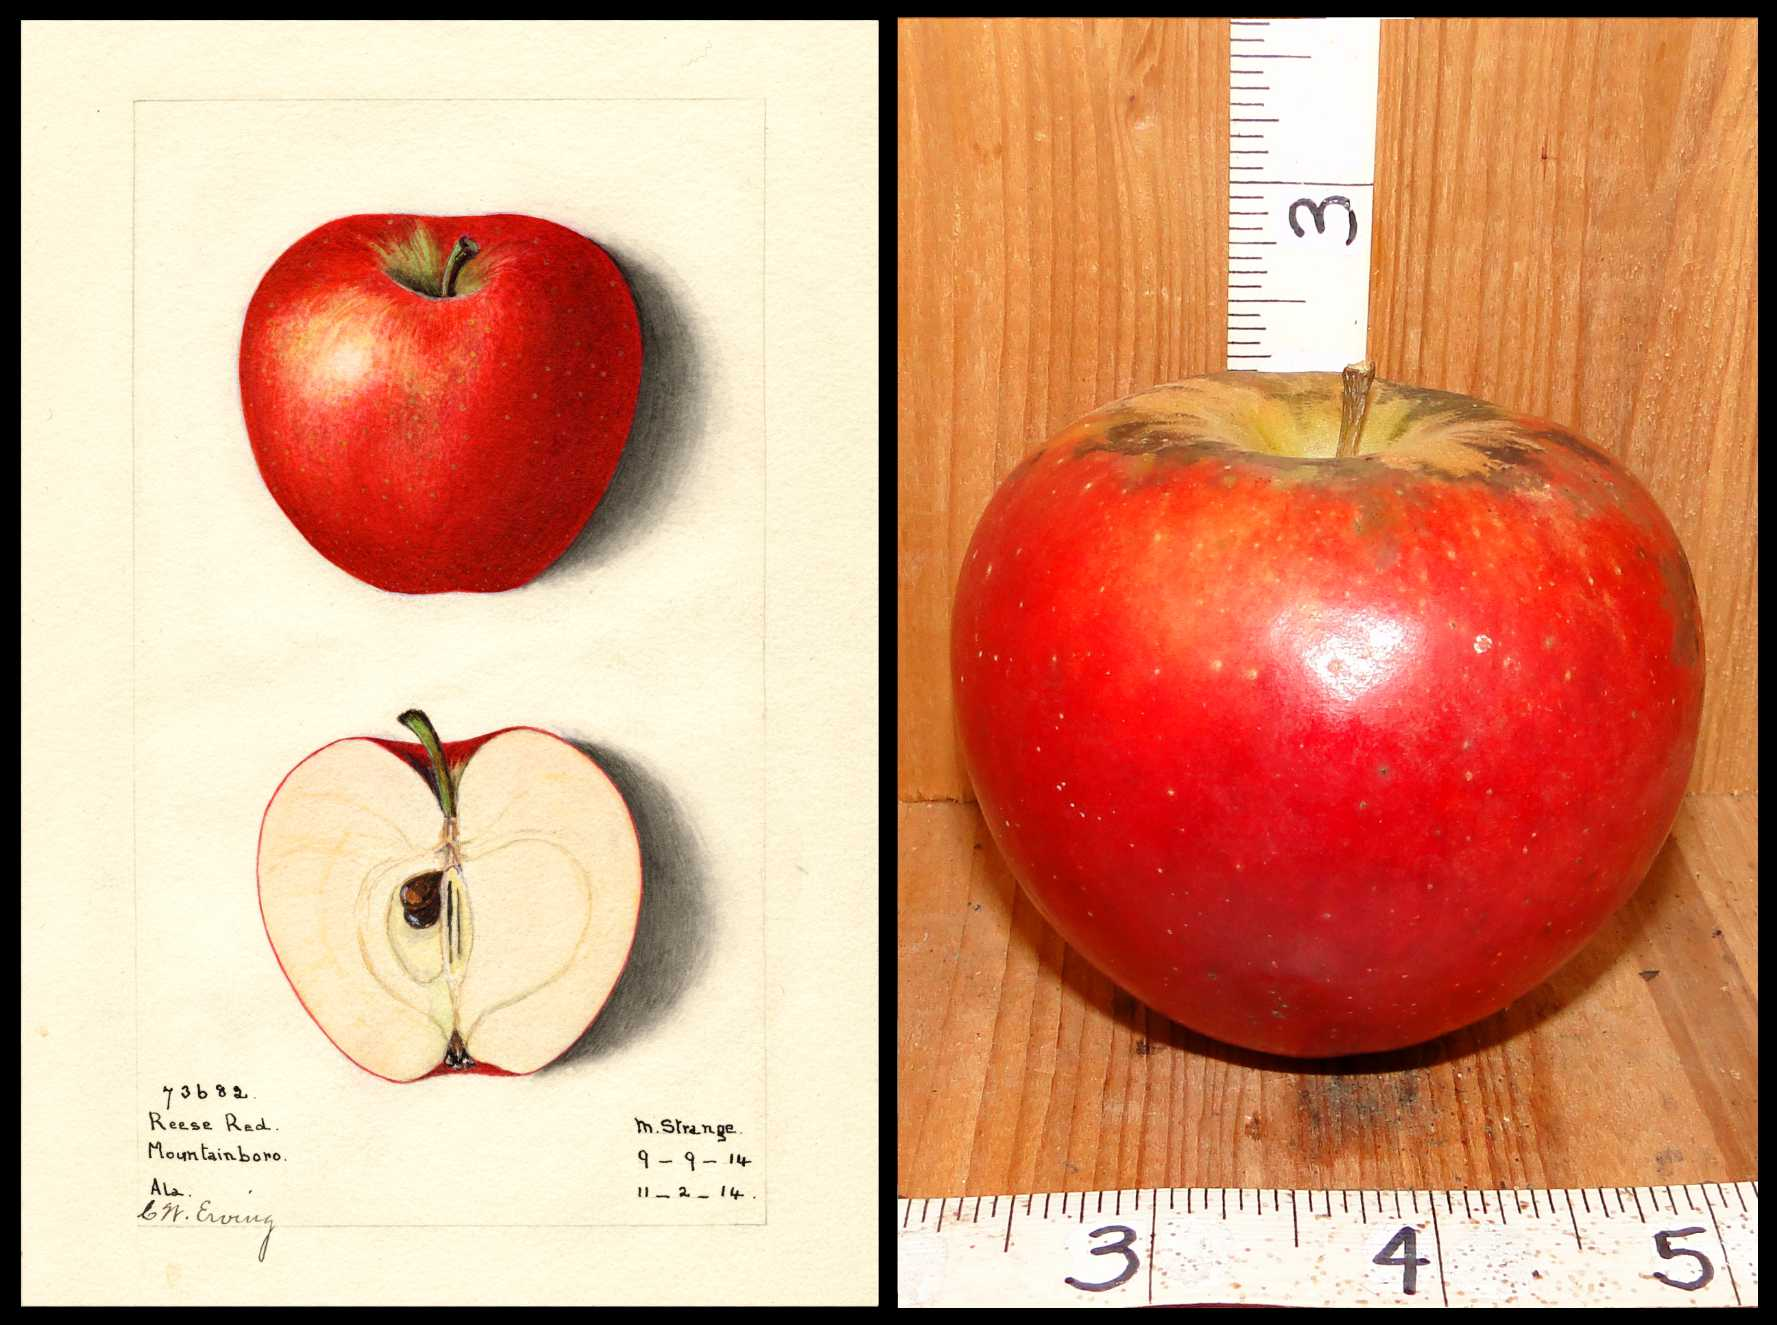 red apple with yellow near the stem